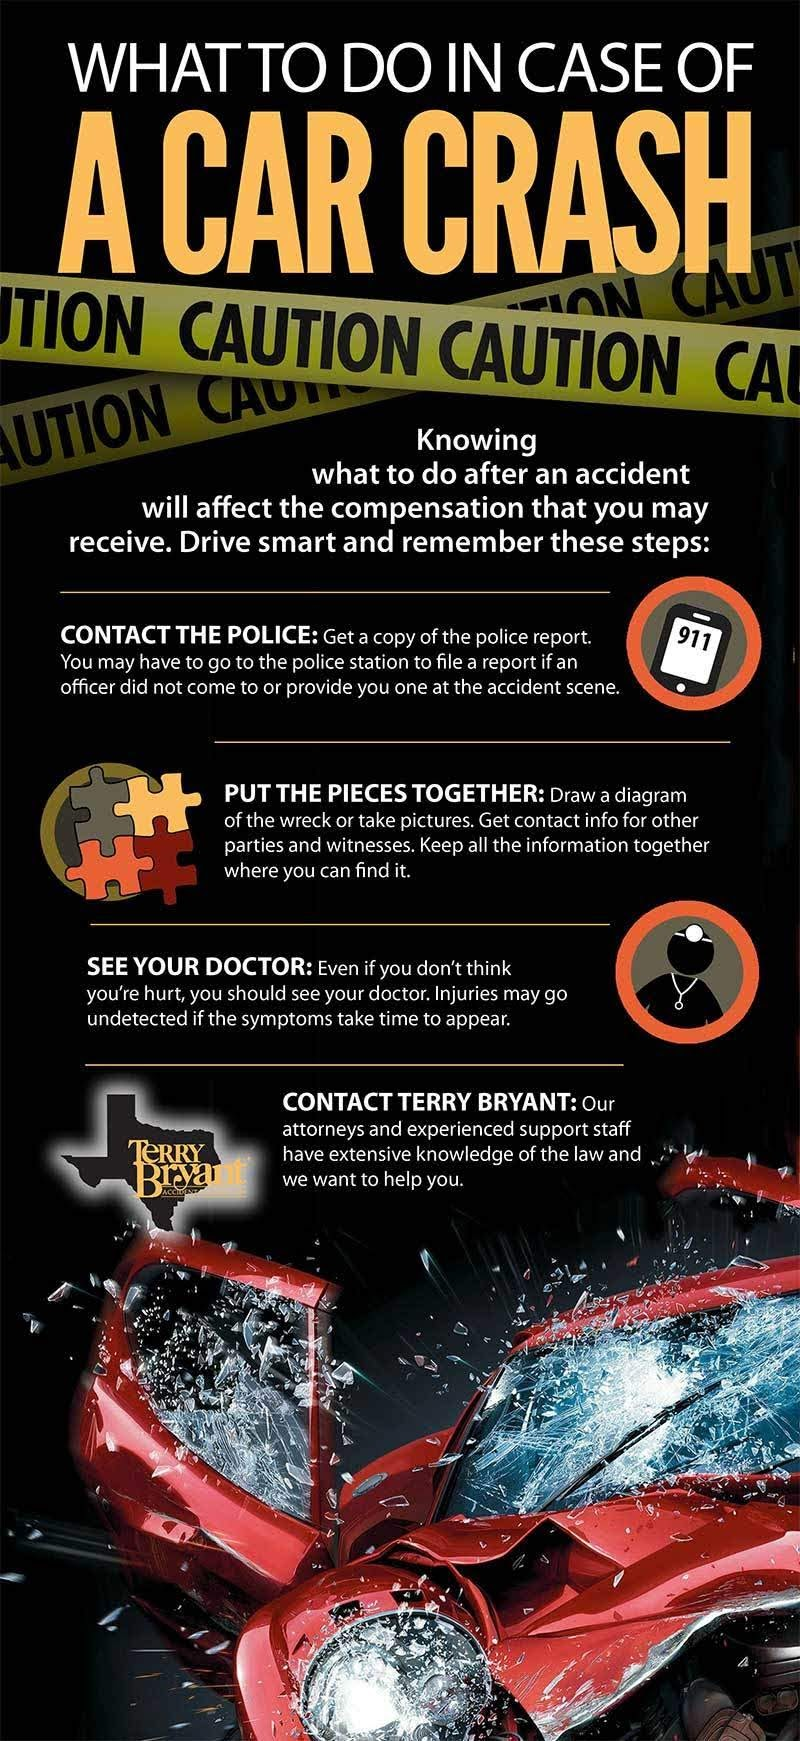 What To Do In Case of a Car Crash #infographic